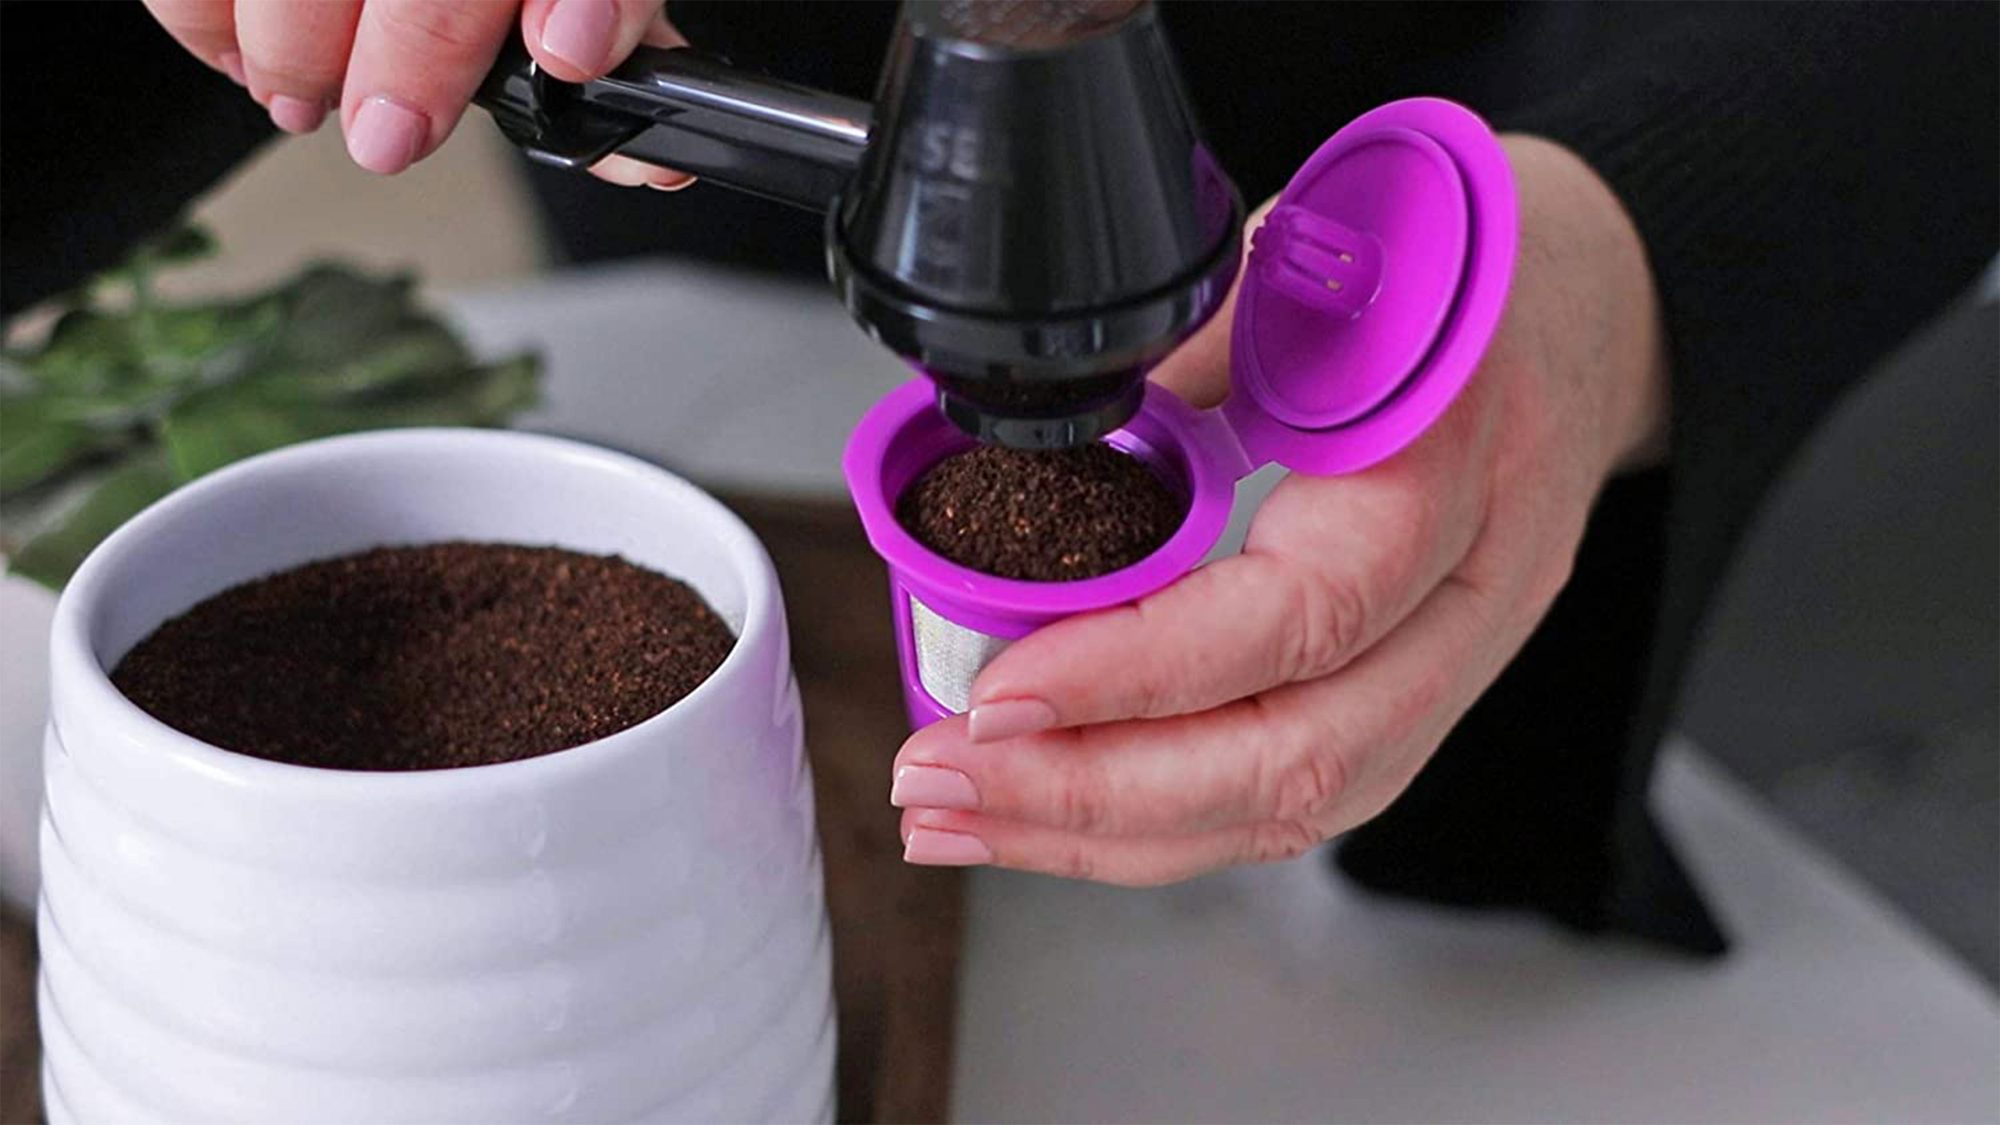 k-cup coffee filter